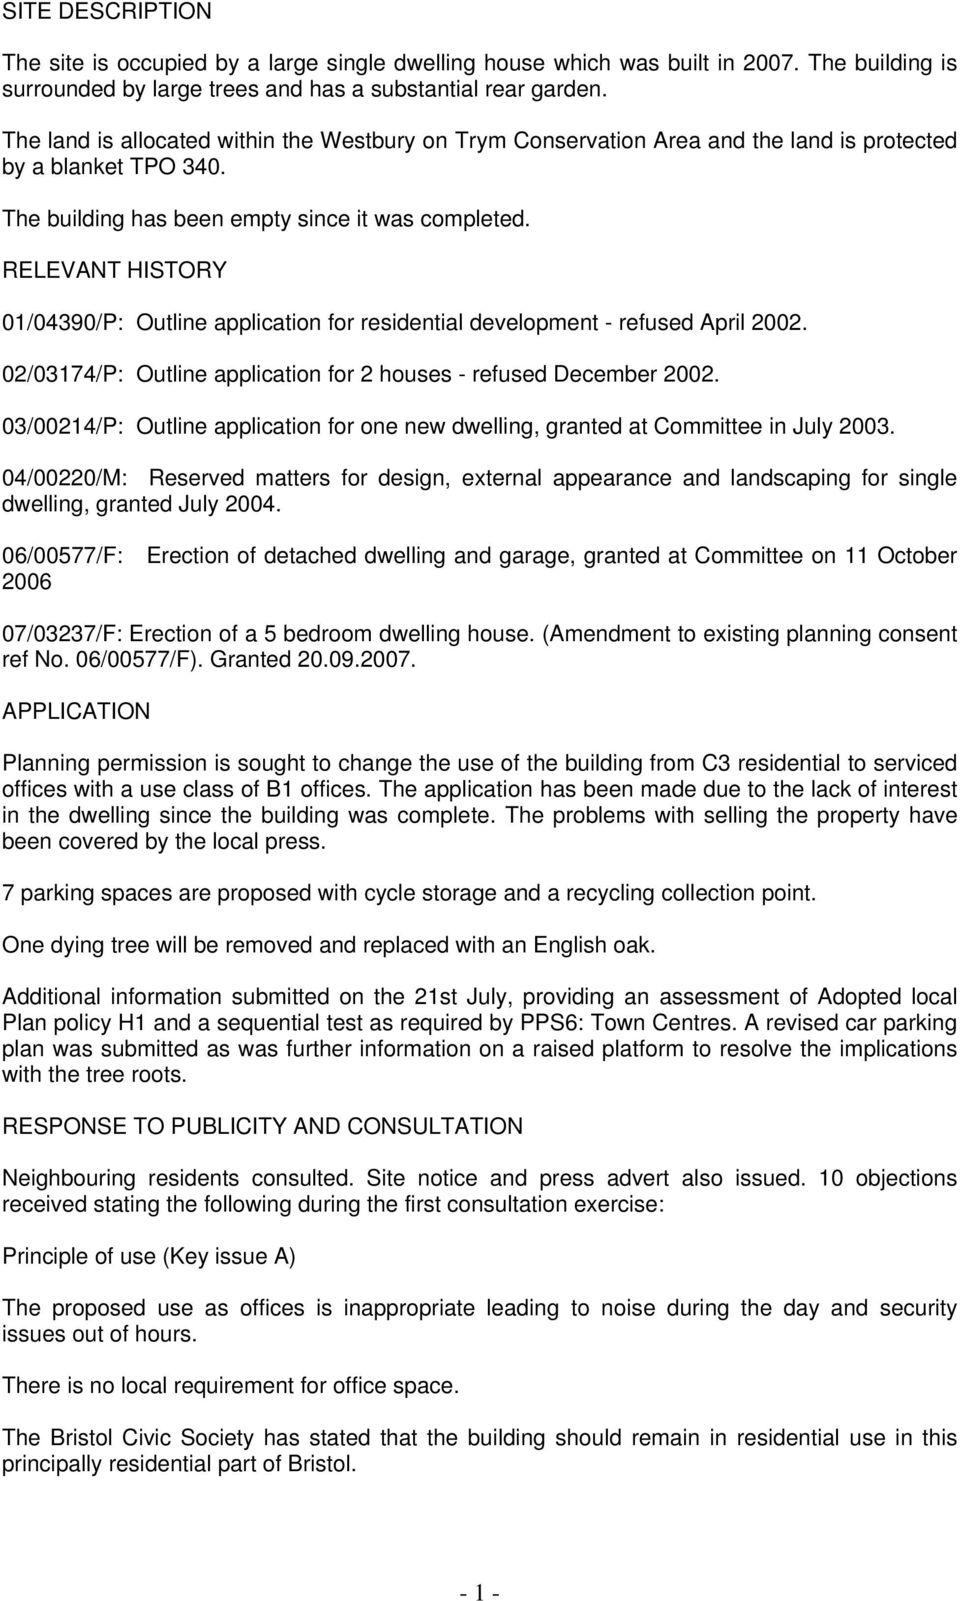 RELEVANT HISTORY 01/04390/P: Outline application for residential development - refused April 2002. 02/03174/P: Outline application for 2 houses - refused December 2002.